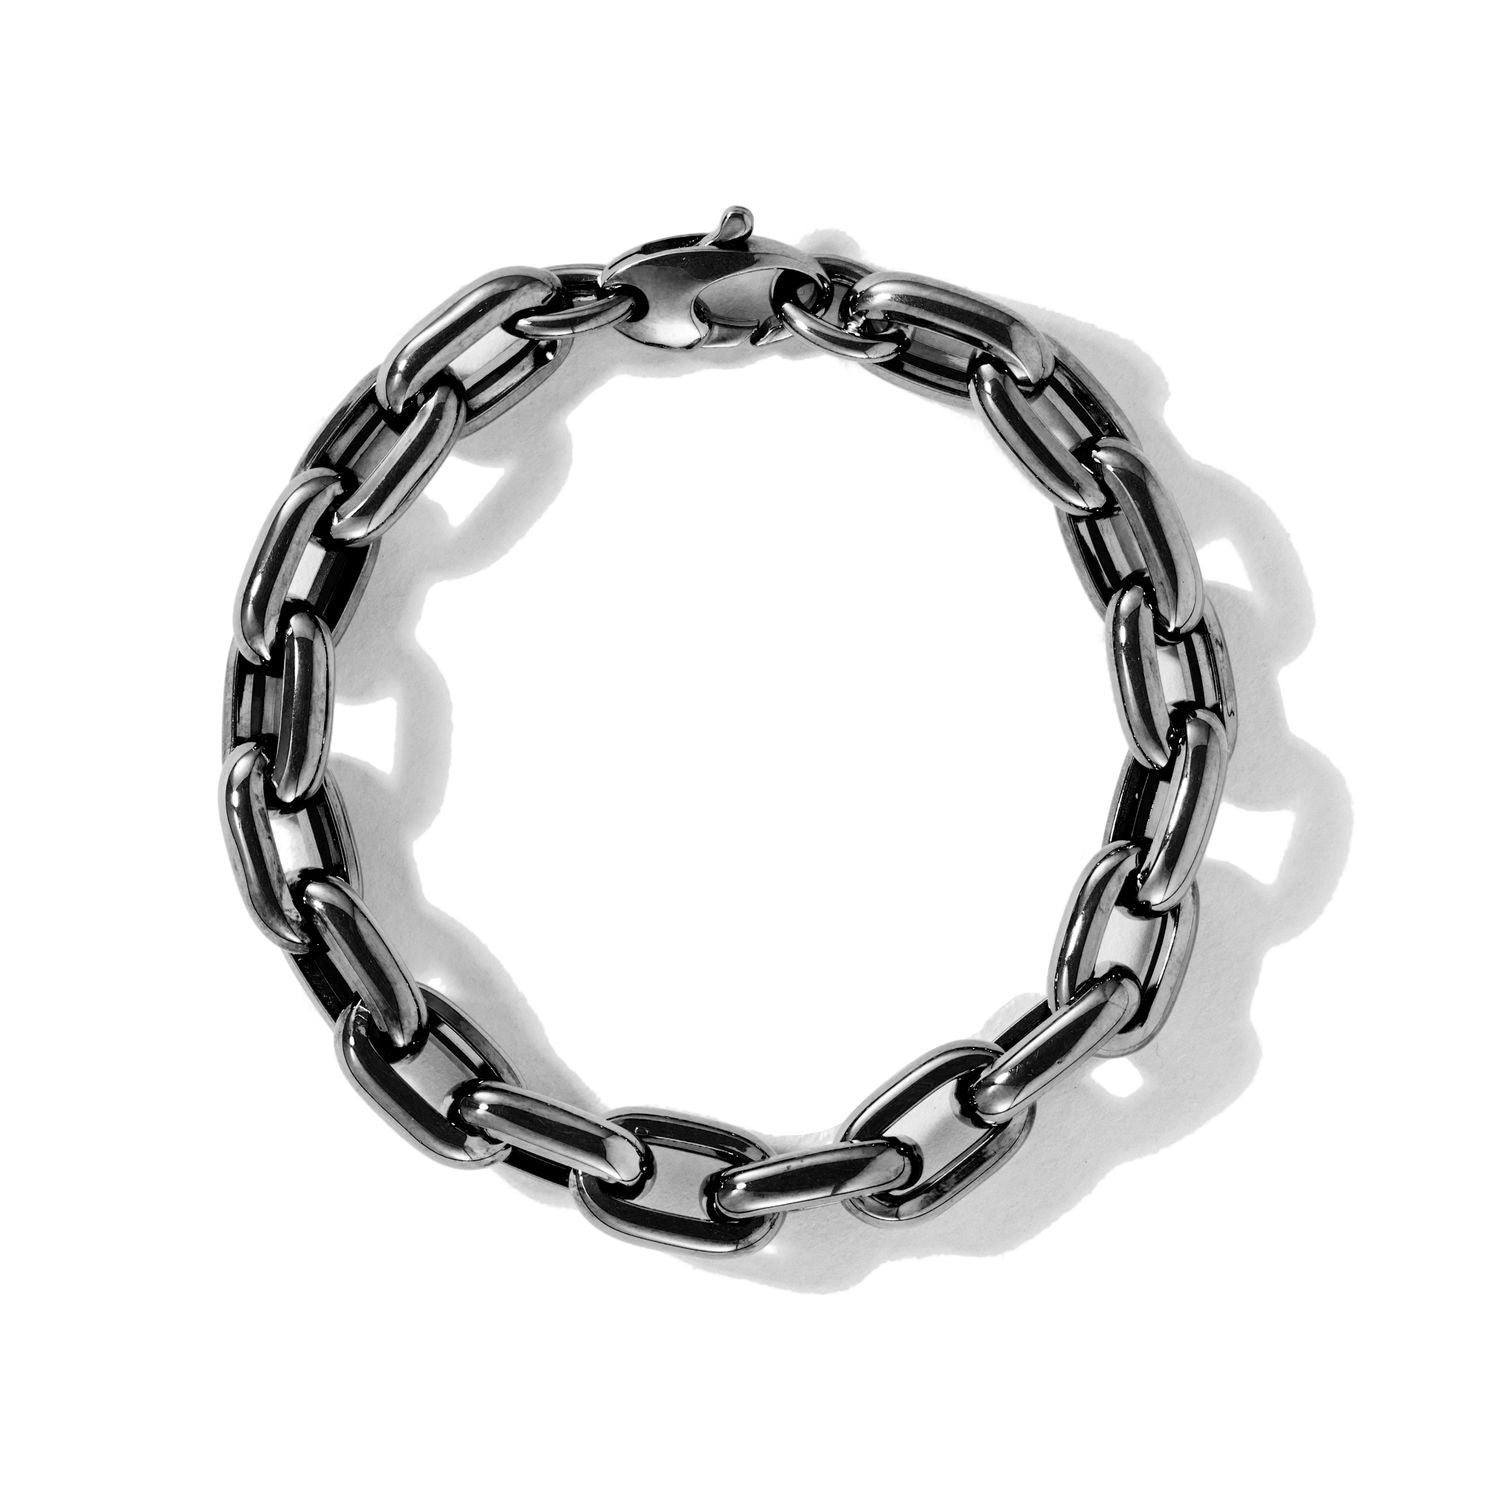 18K Black Gold 7.5' Bold Links Chain Bracelet